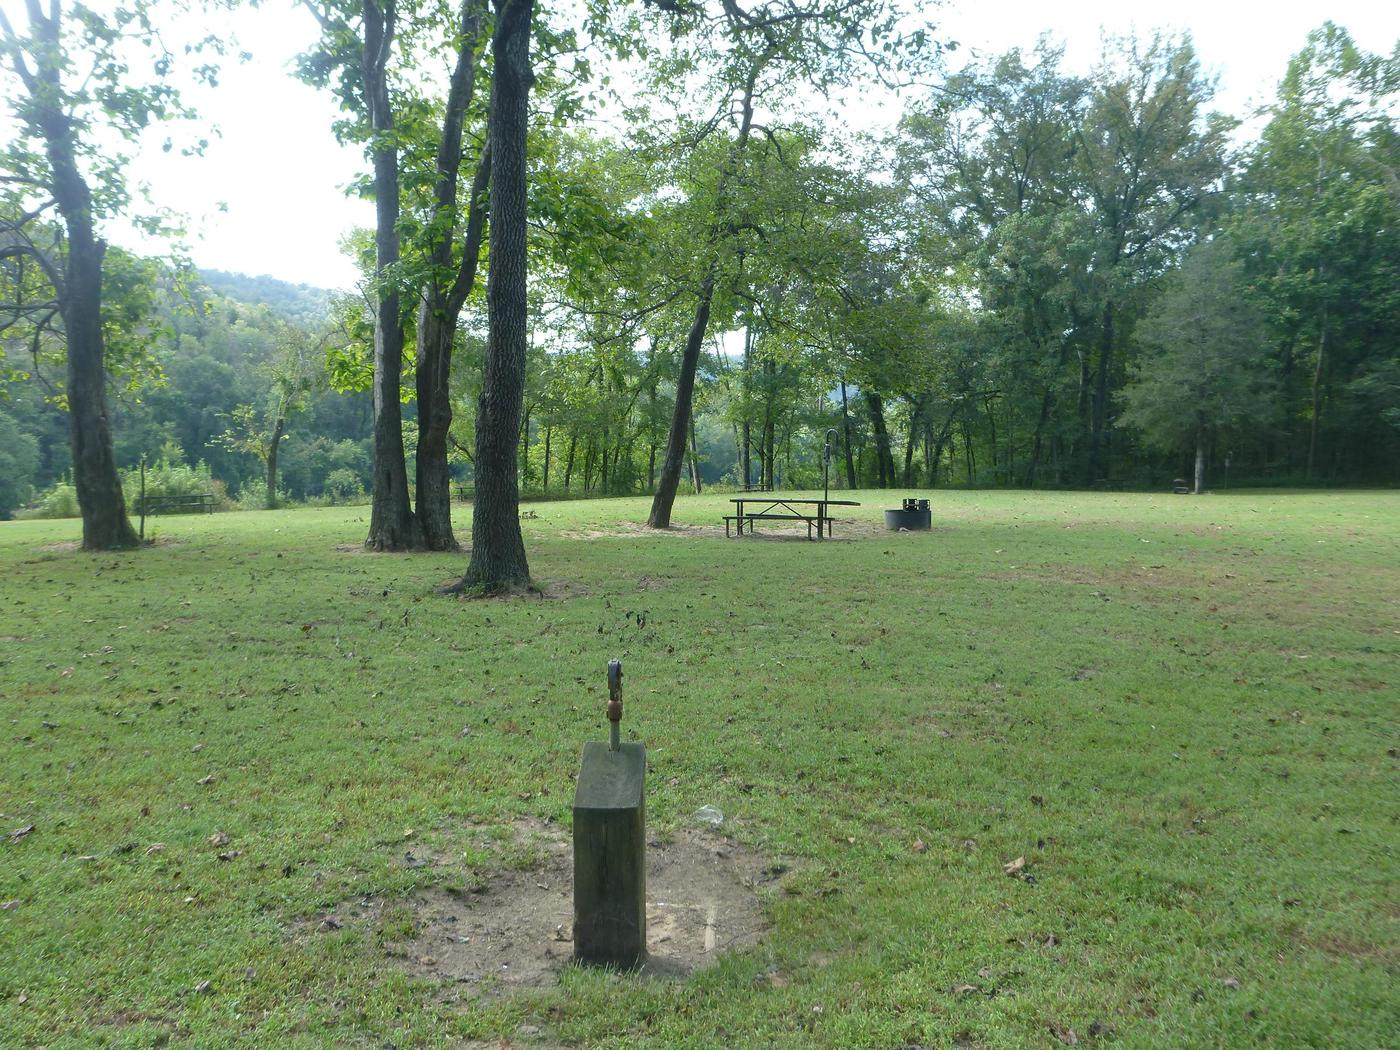 Tent Camping at Rush CampgroundRush Campground offers primitive tent camp experiences.